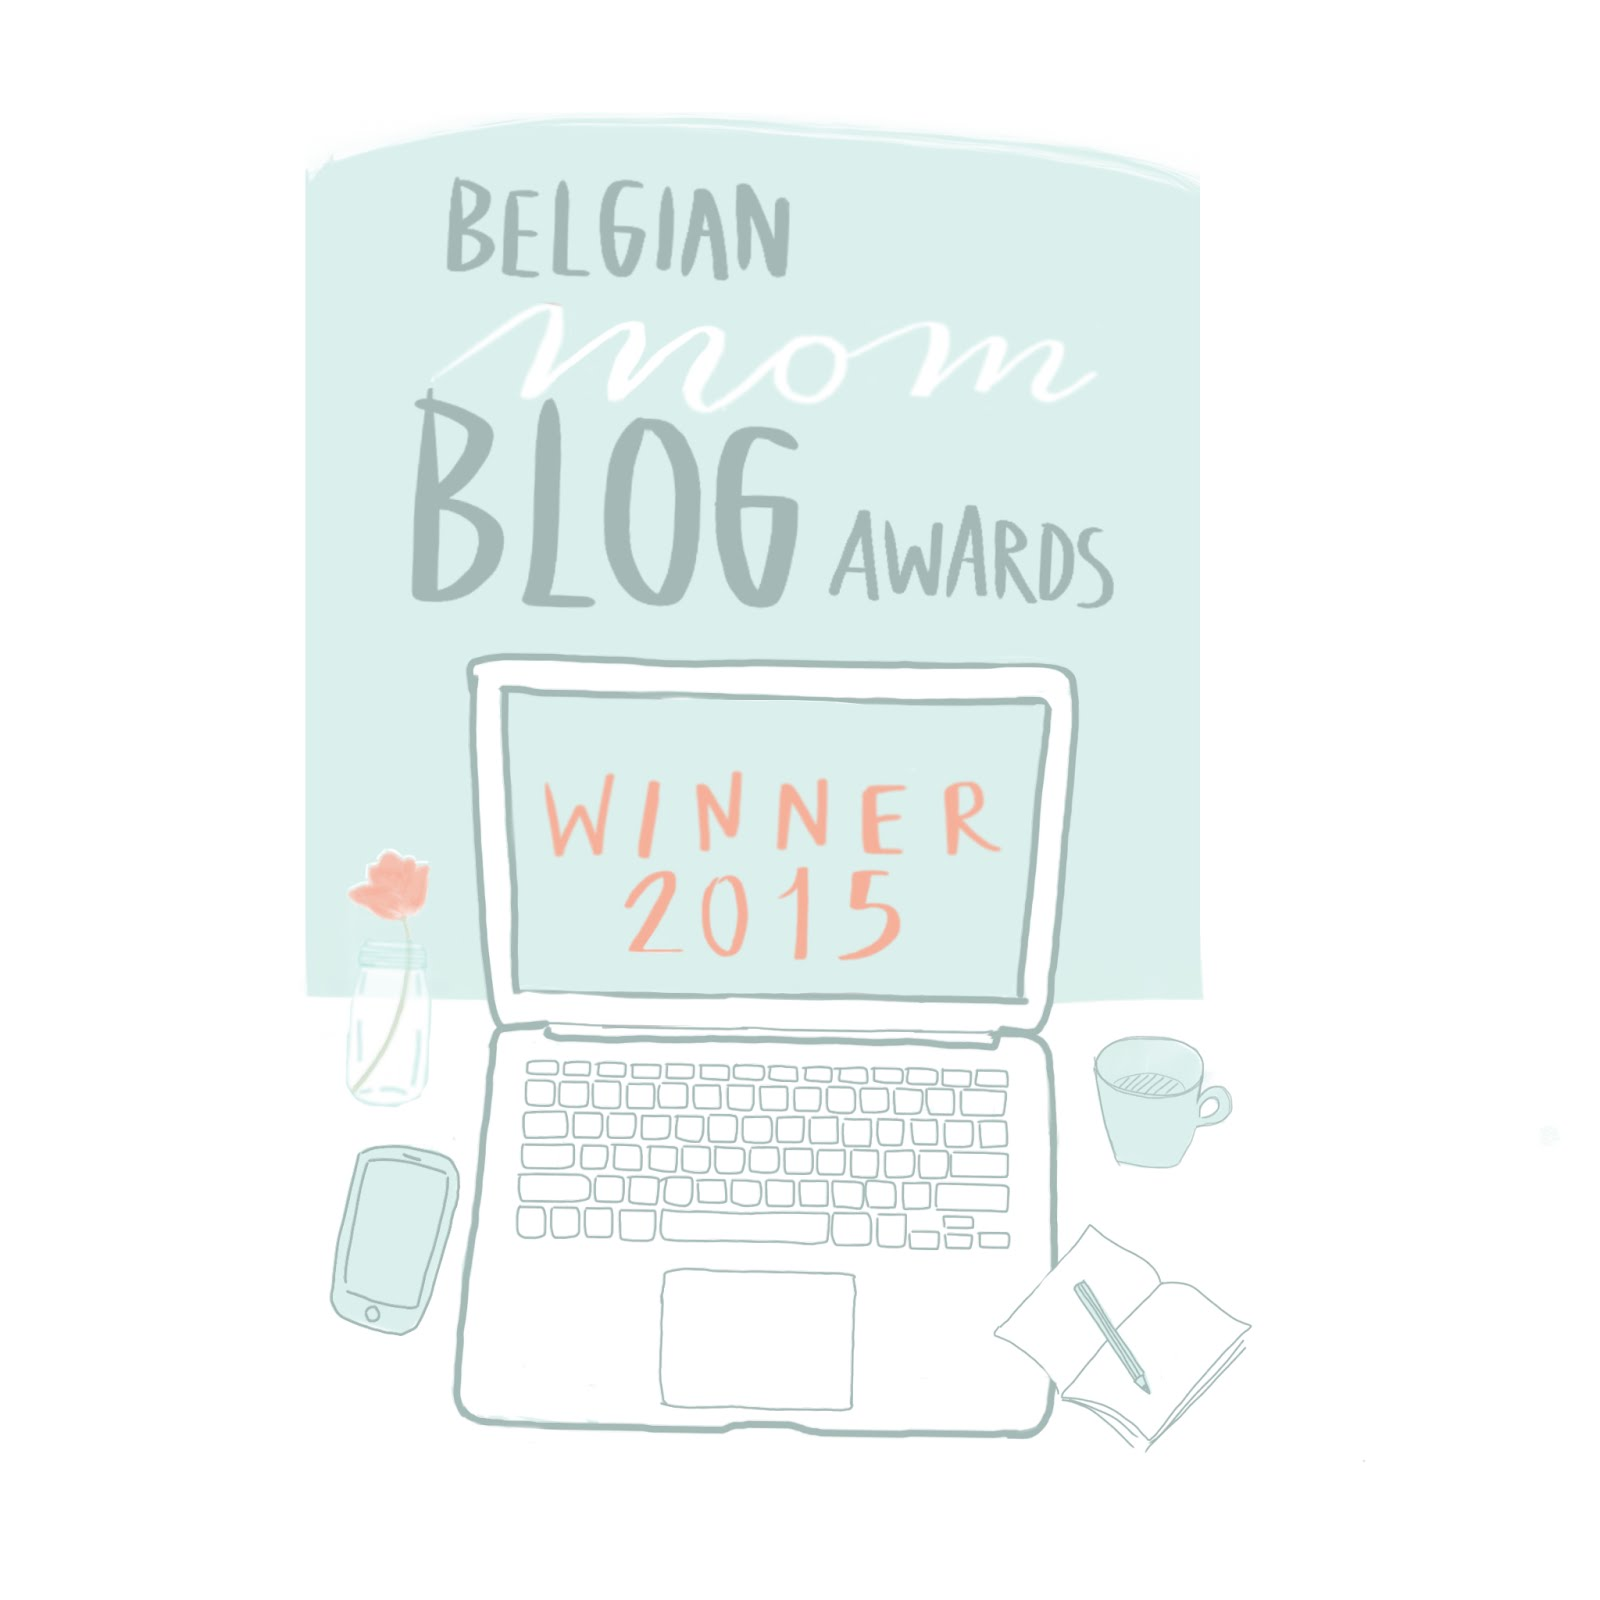 Belgian Blog Awards winner